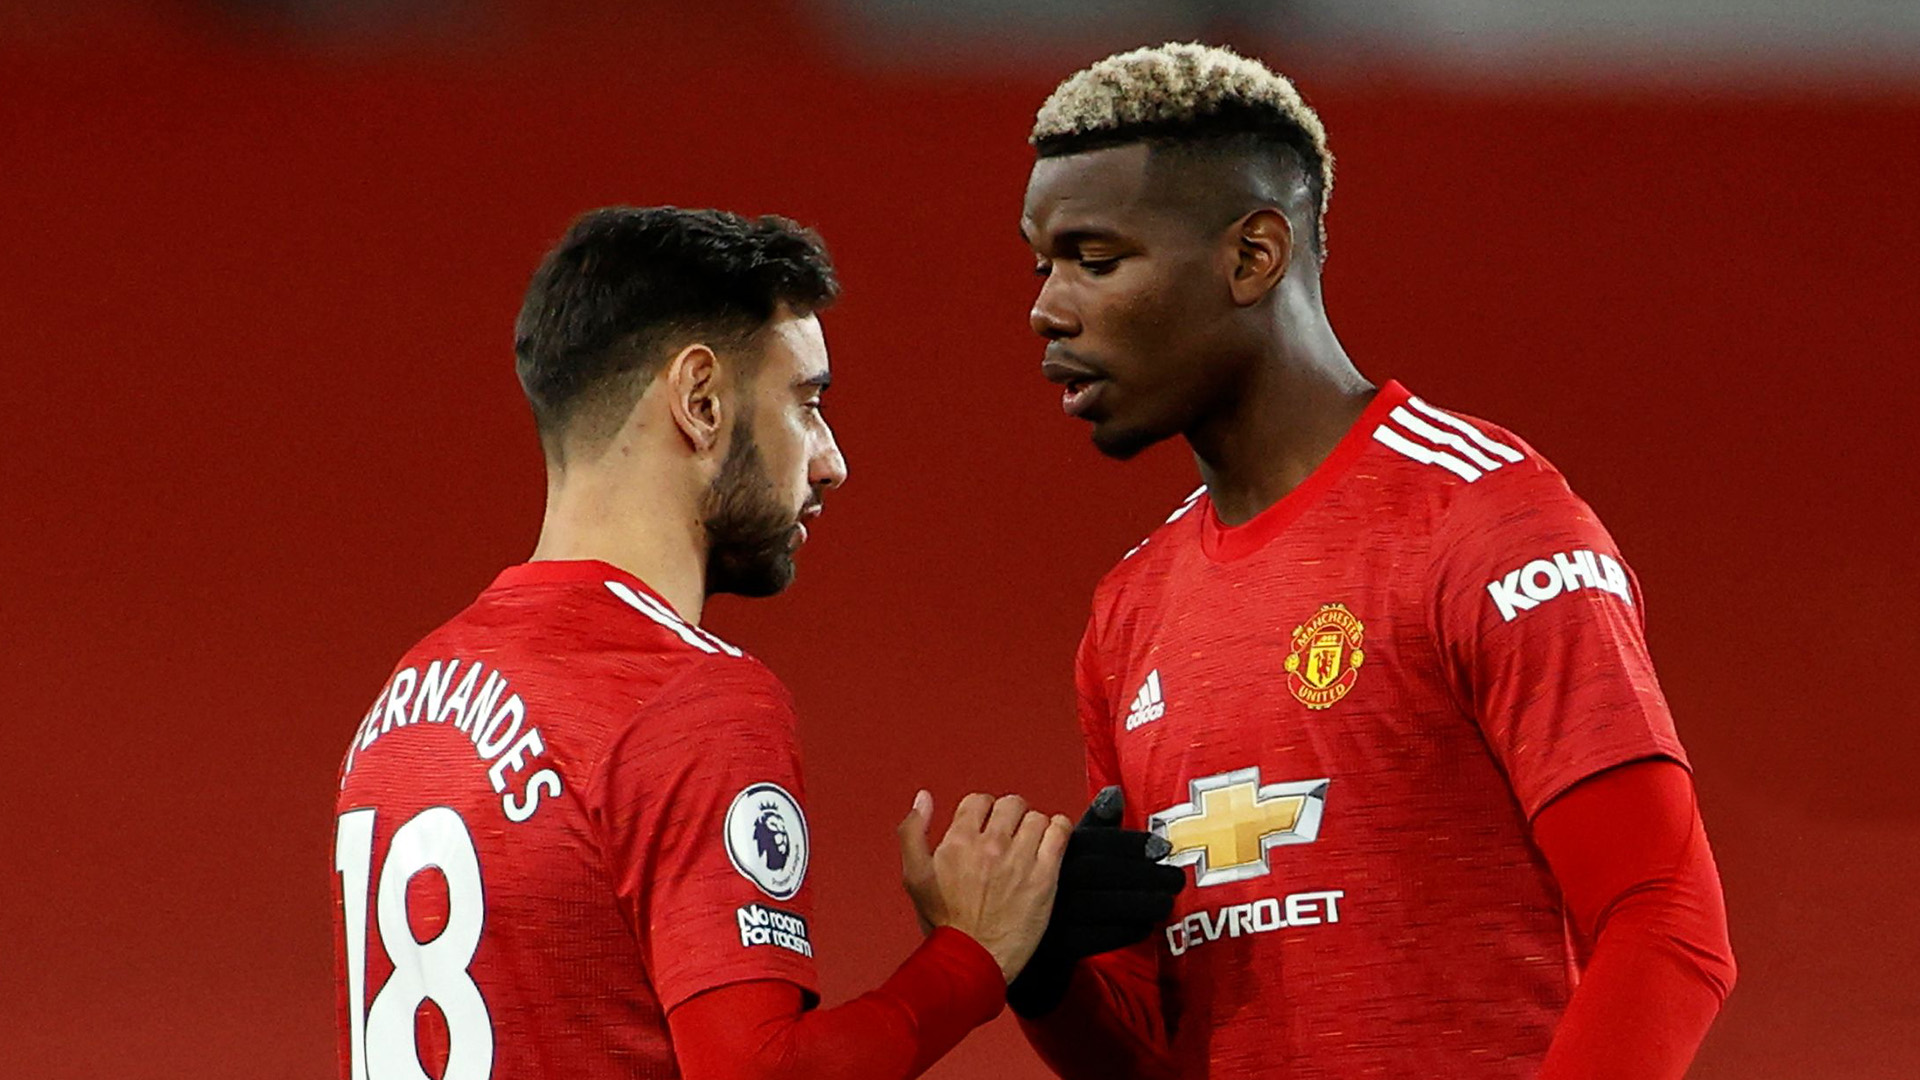 Fernandes dented Pogba's ego' - Man Utd midfielder has raised his game  after 'playing in the shadow' of €55m star, says Parker   Goal.com